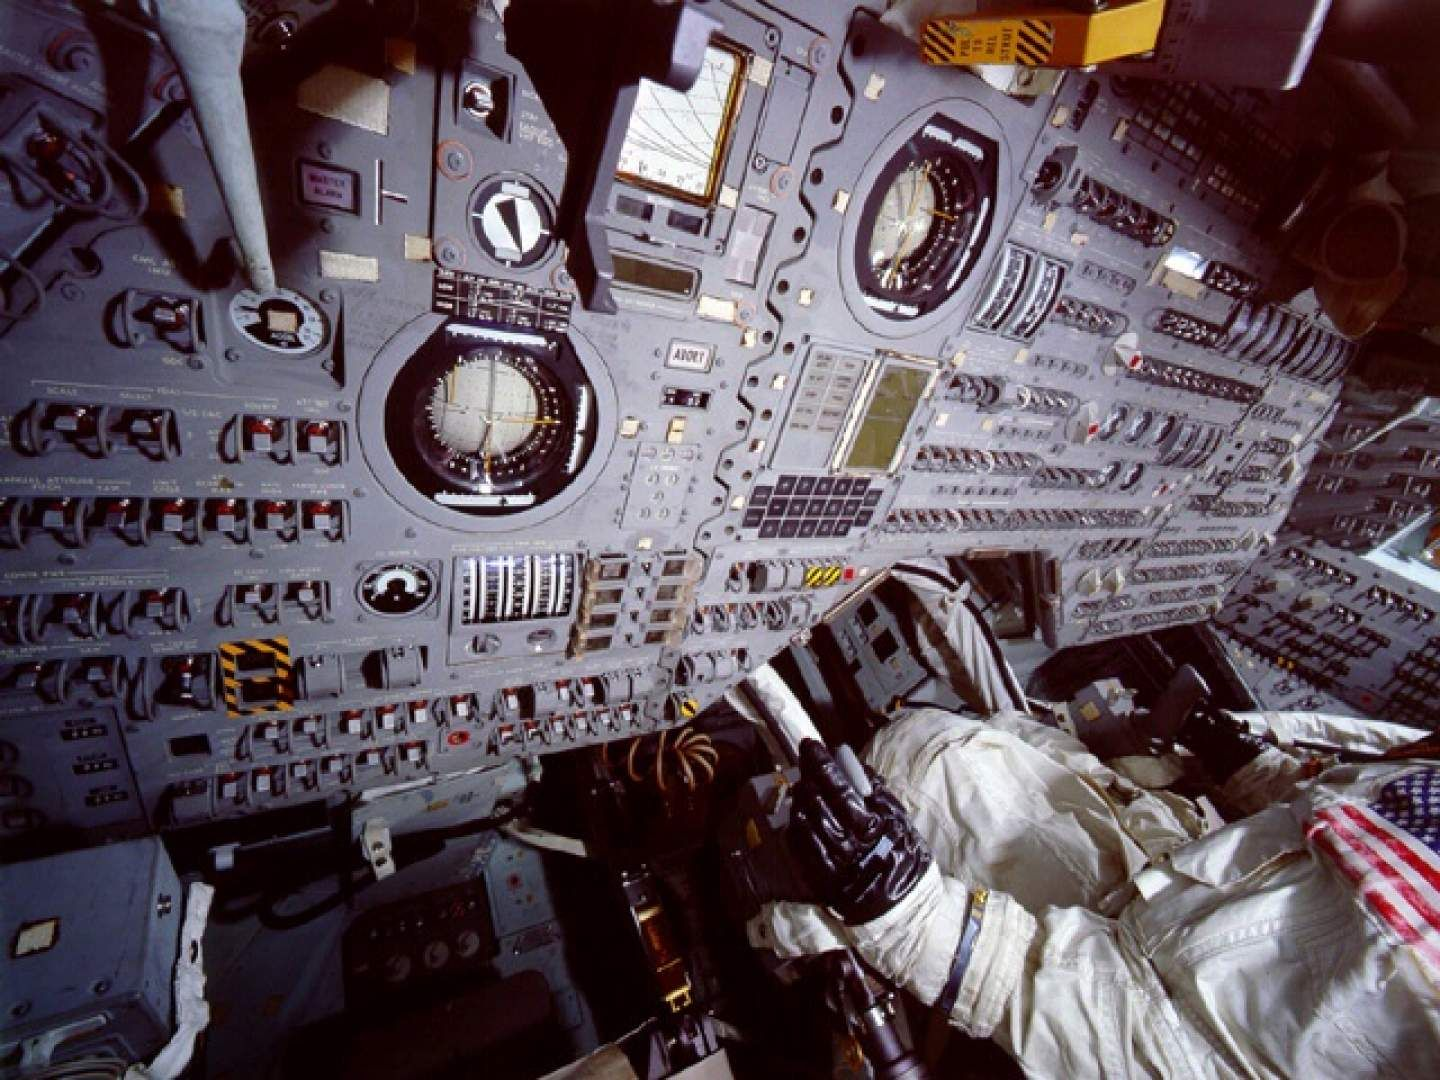 Apollo command module interior cockpit